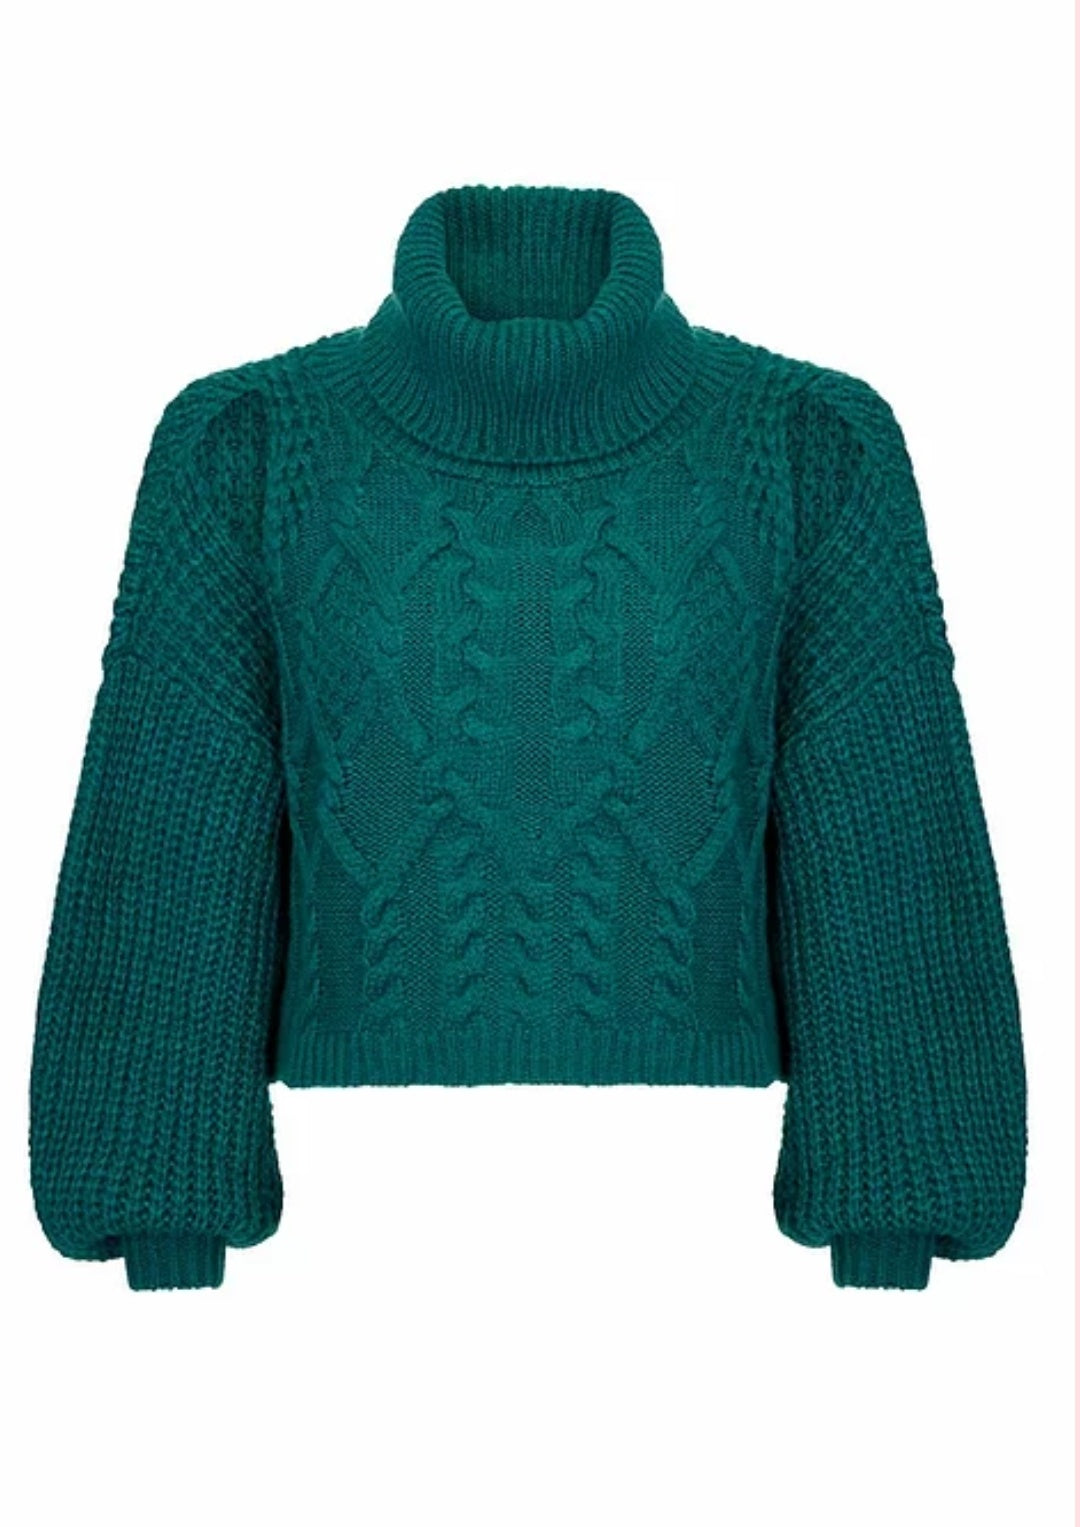 Teal Cropped knitted Jumper